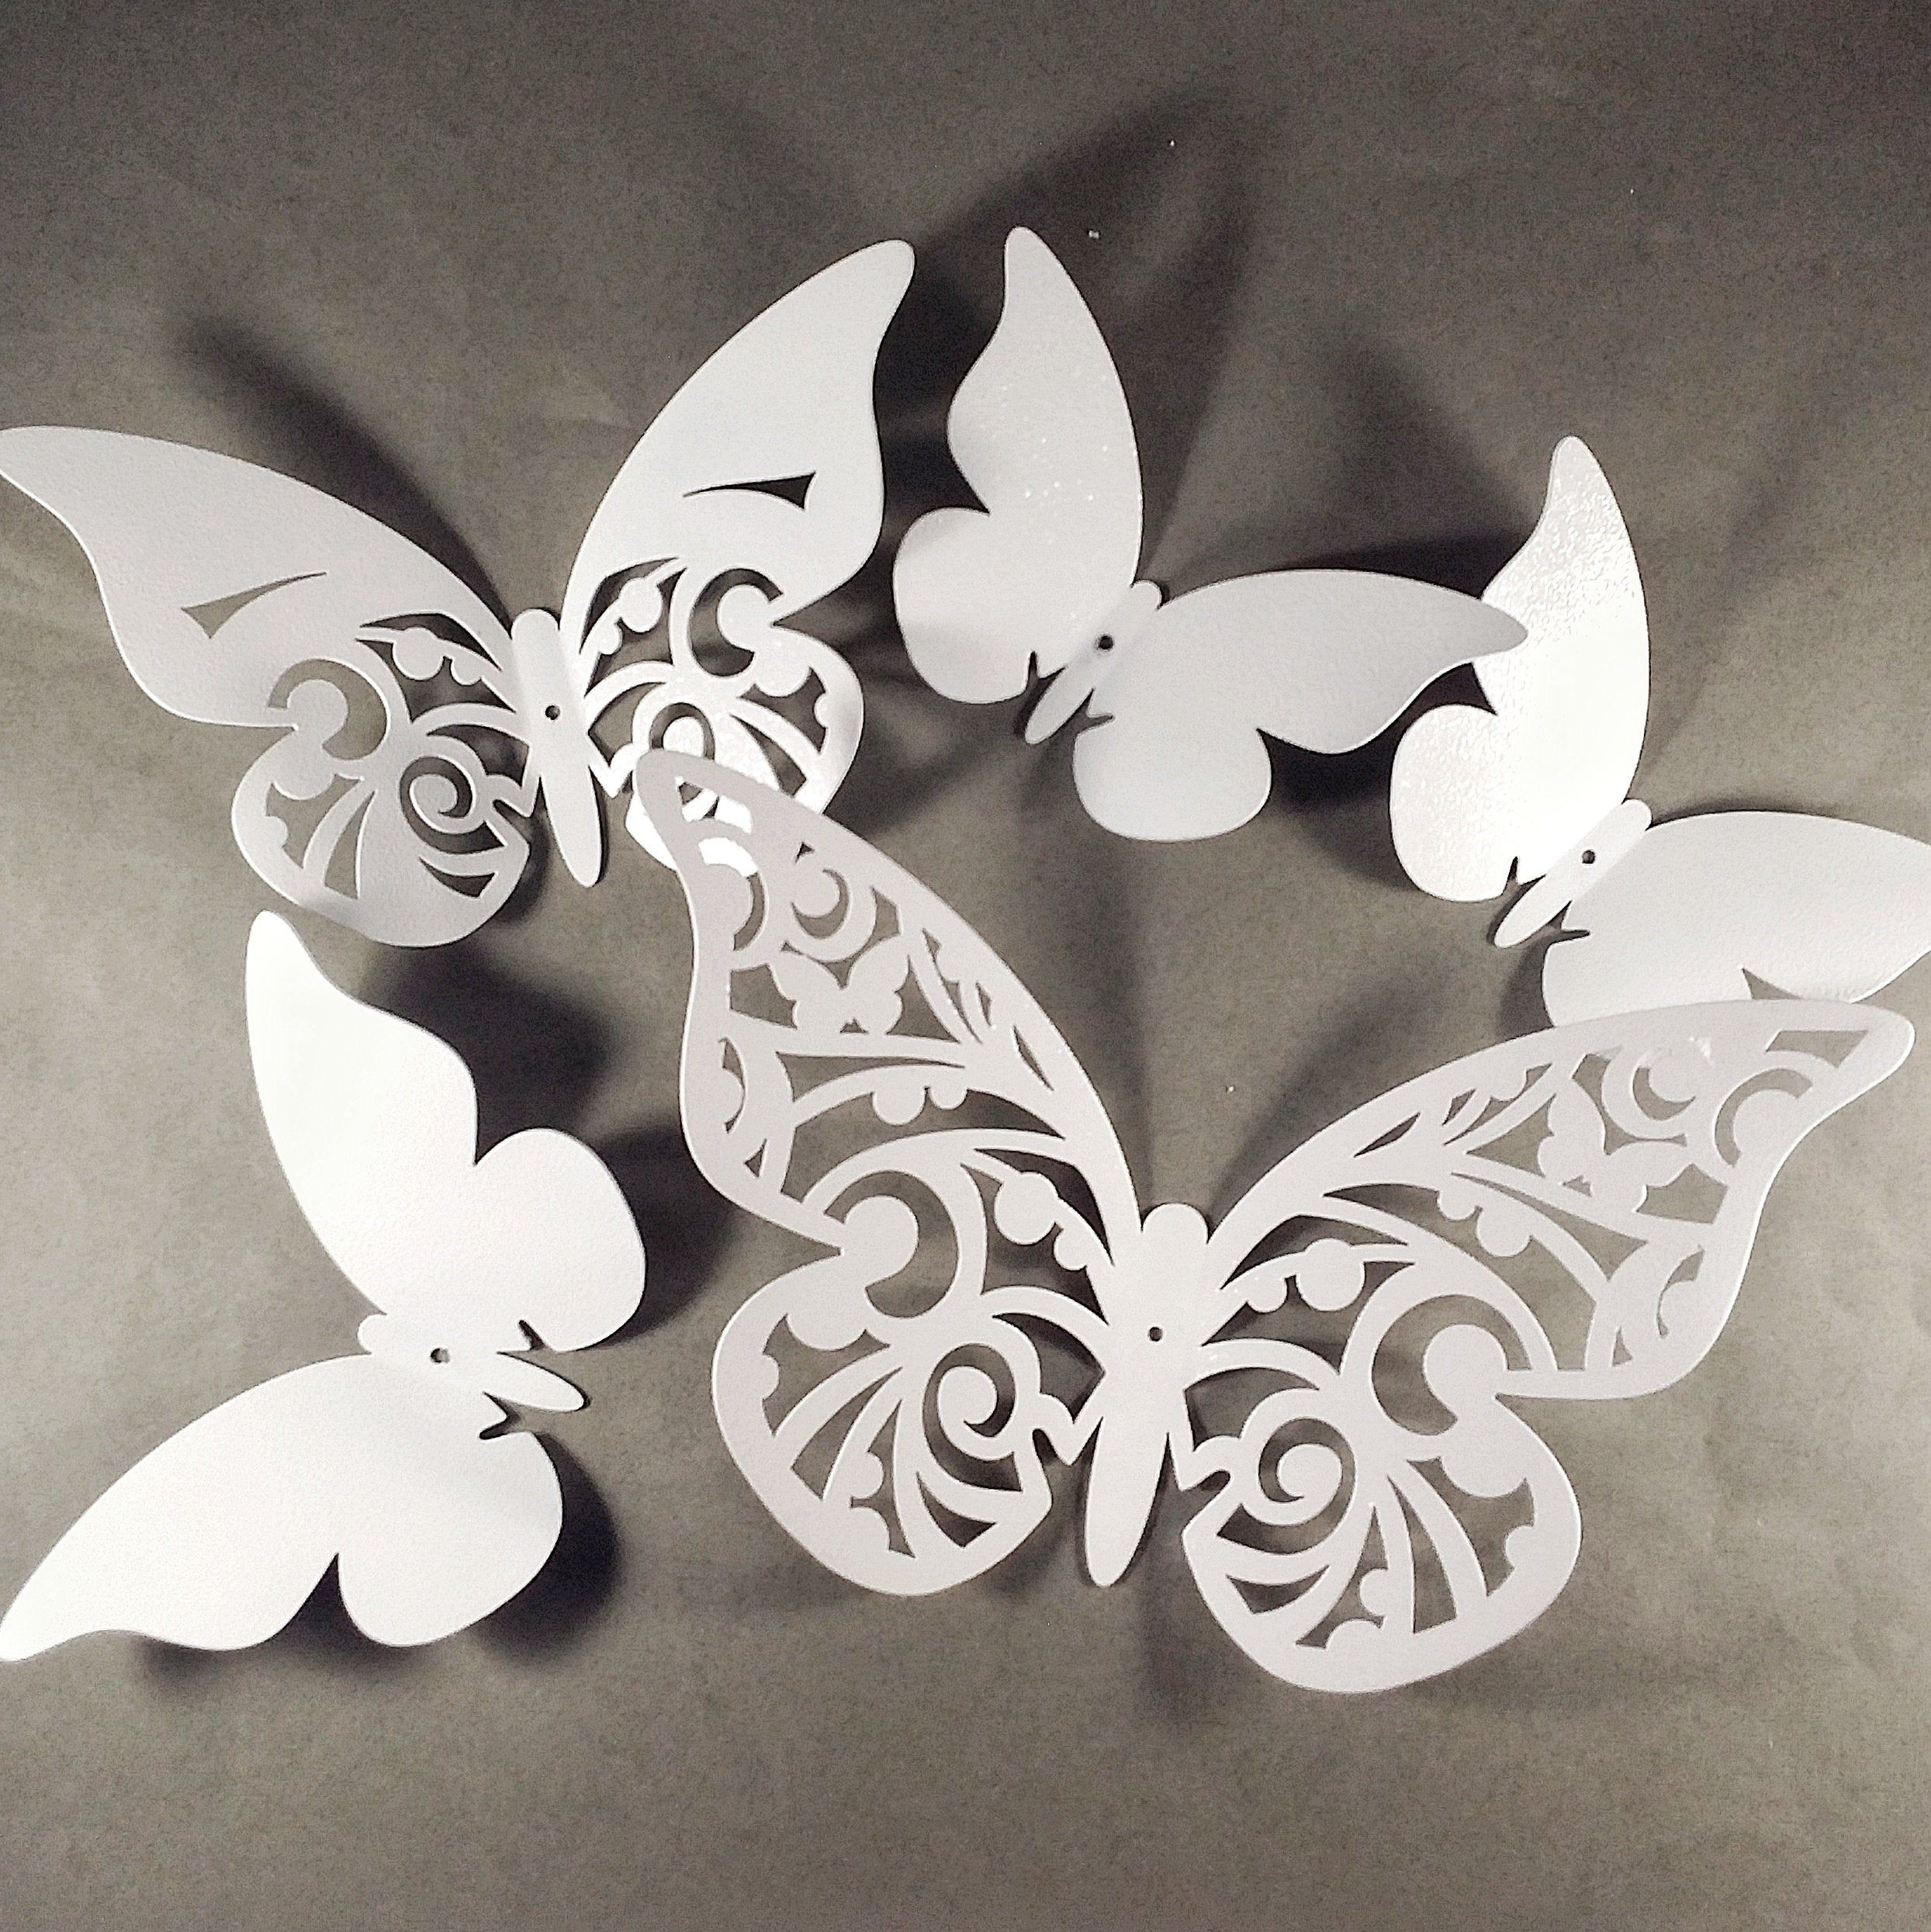 3d Butterflies Metal Decormetal Butterflieswall Sculpture Etsy In 2020 Butterfly Wall Decor Butterfly Wall Wall Sculptures